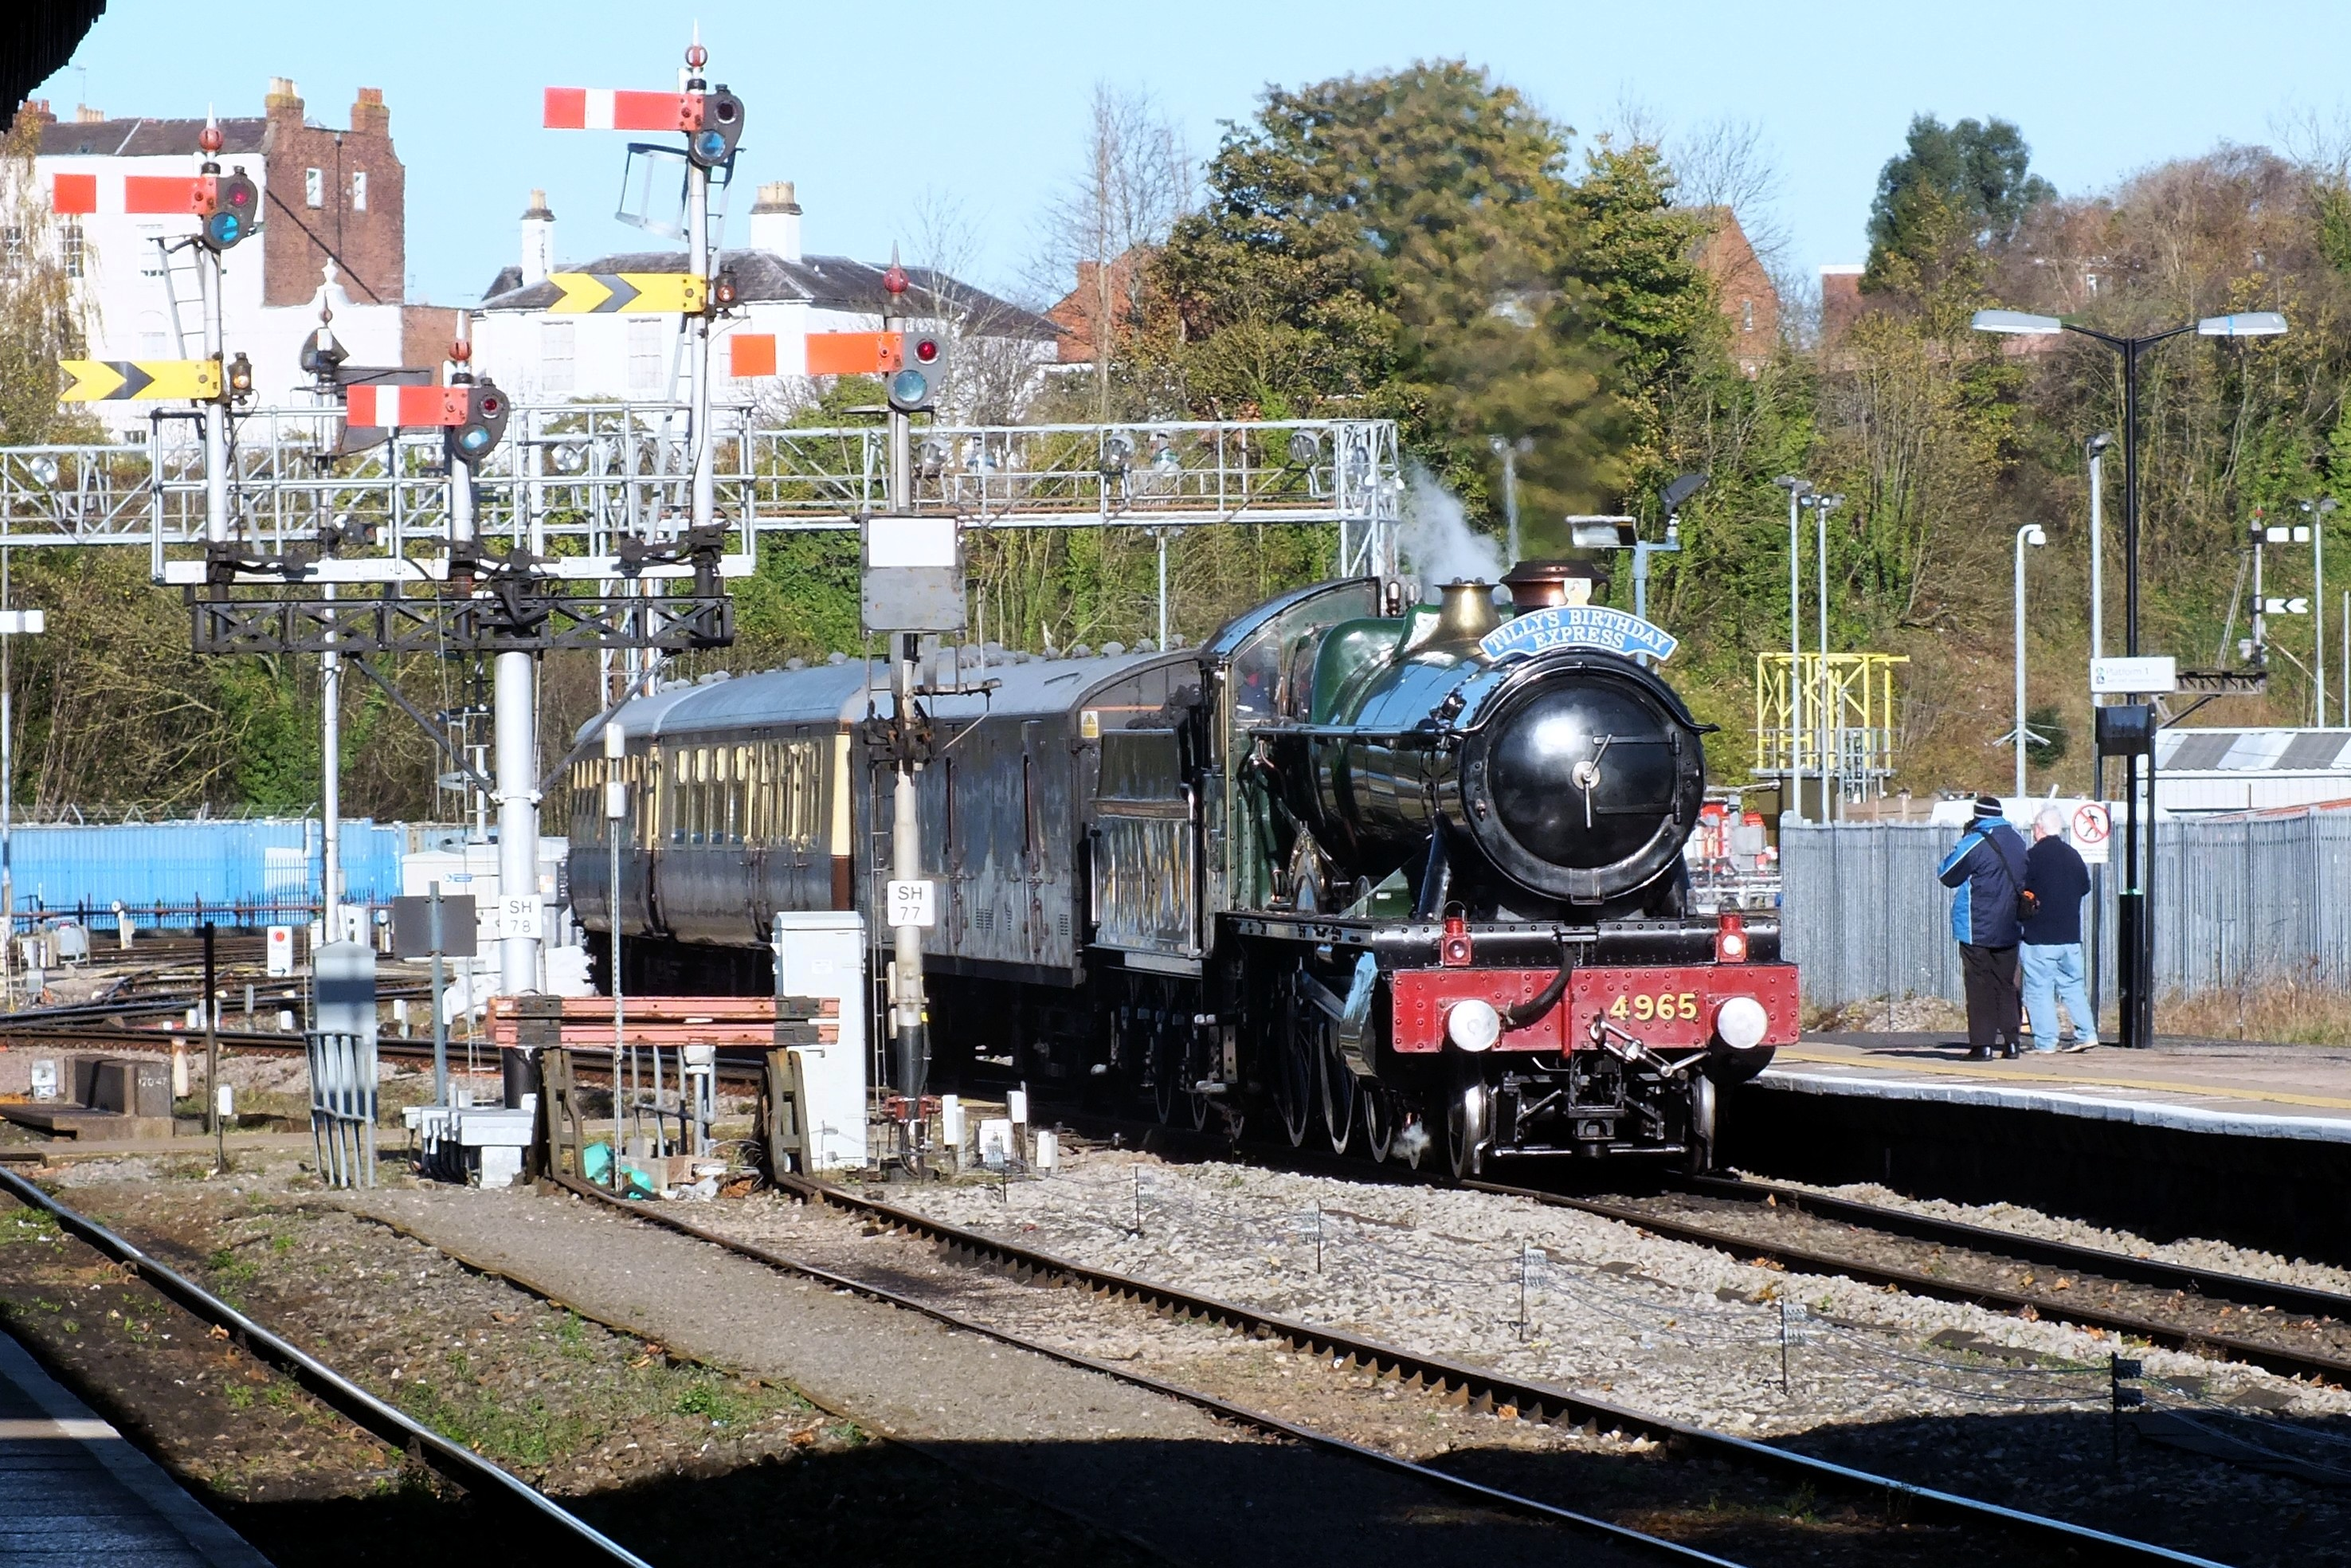 21 November 2015 Shrub Hill 003.jpg